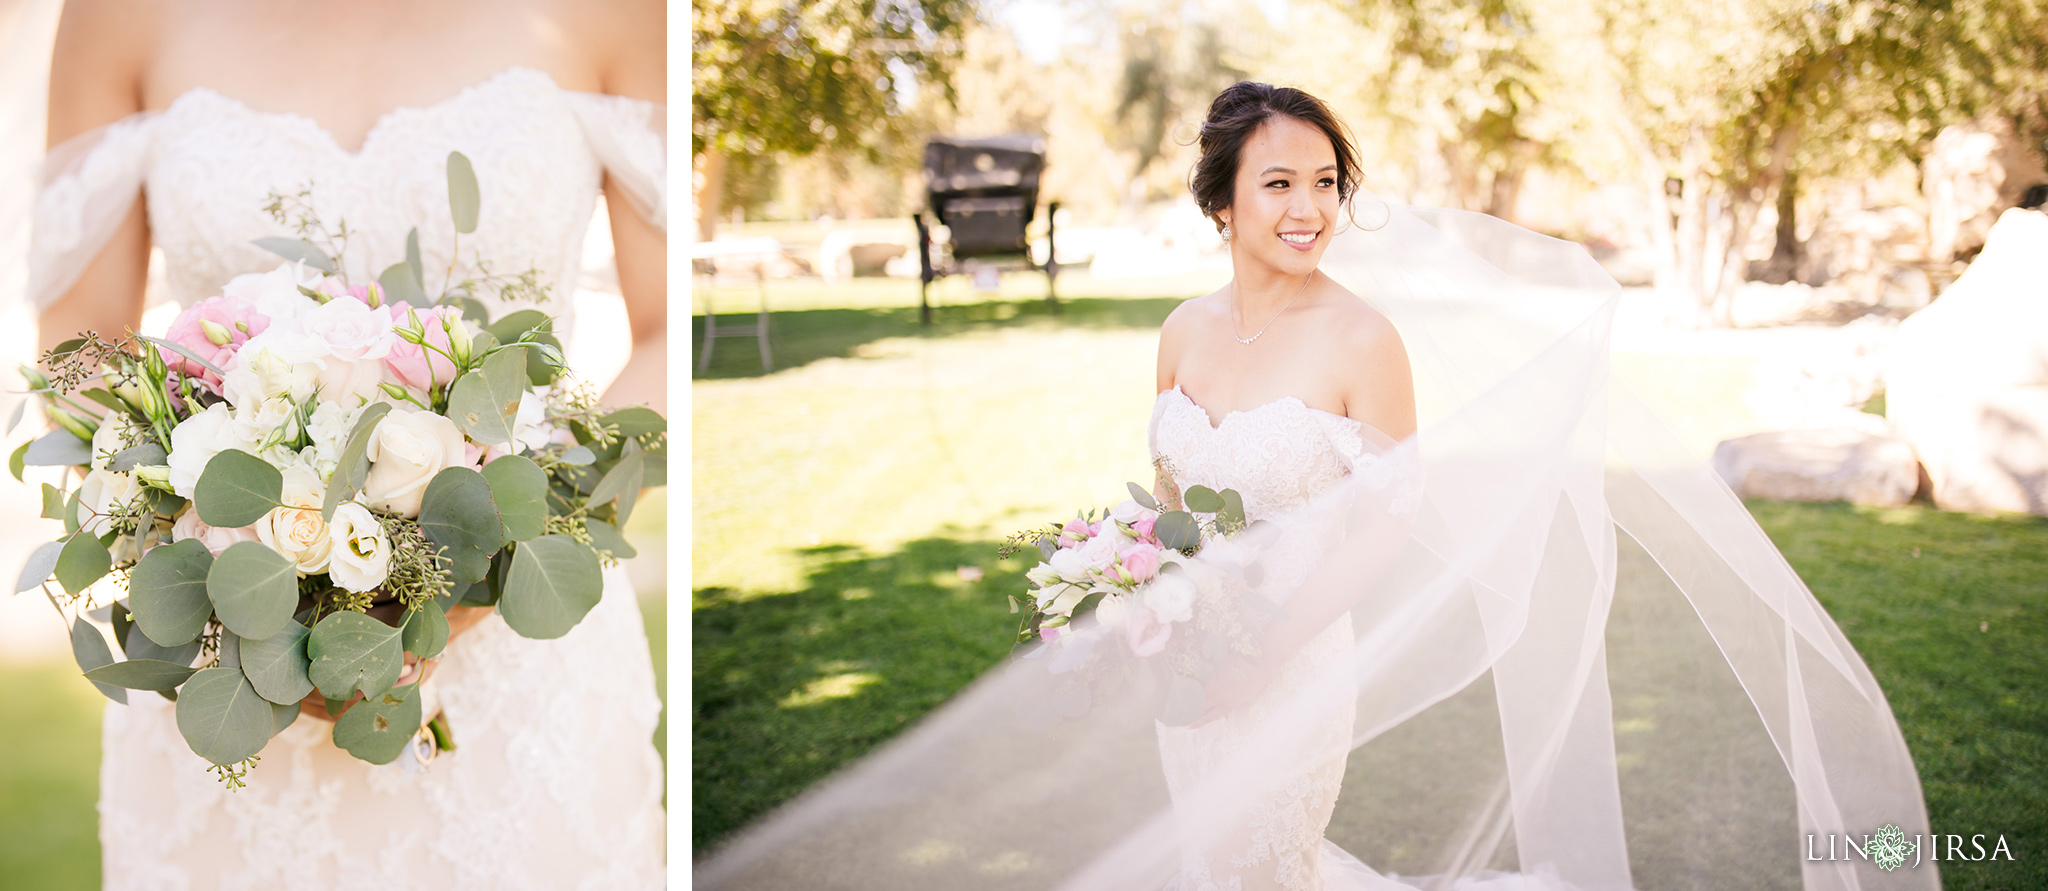 10 Galway Downs Temecula Wedding Photography